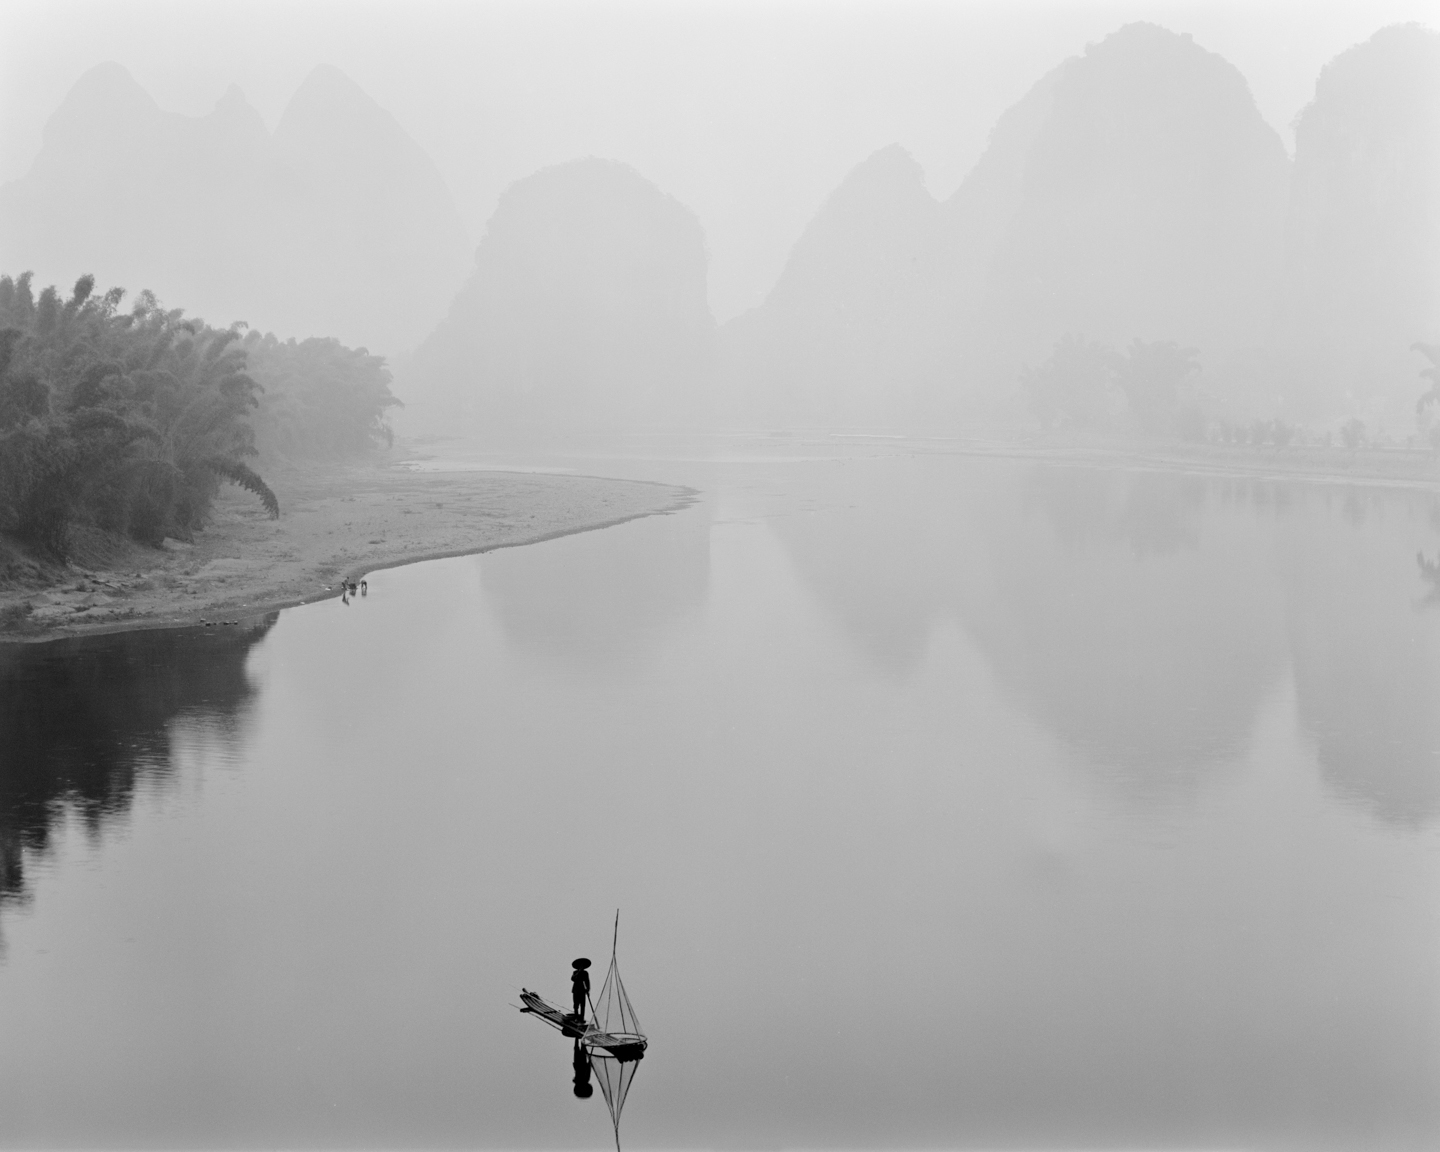 Fisherman, Yangshuo, China